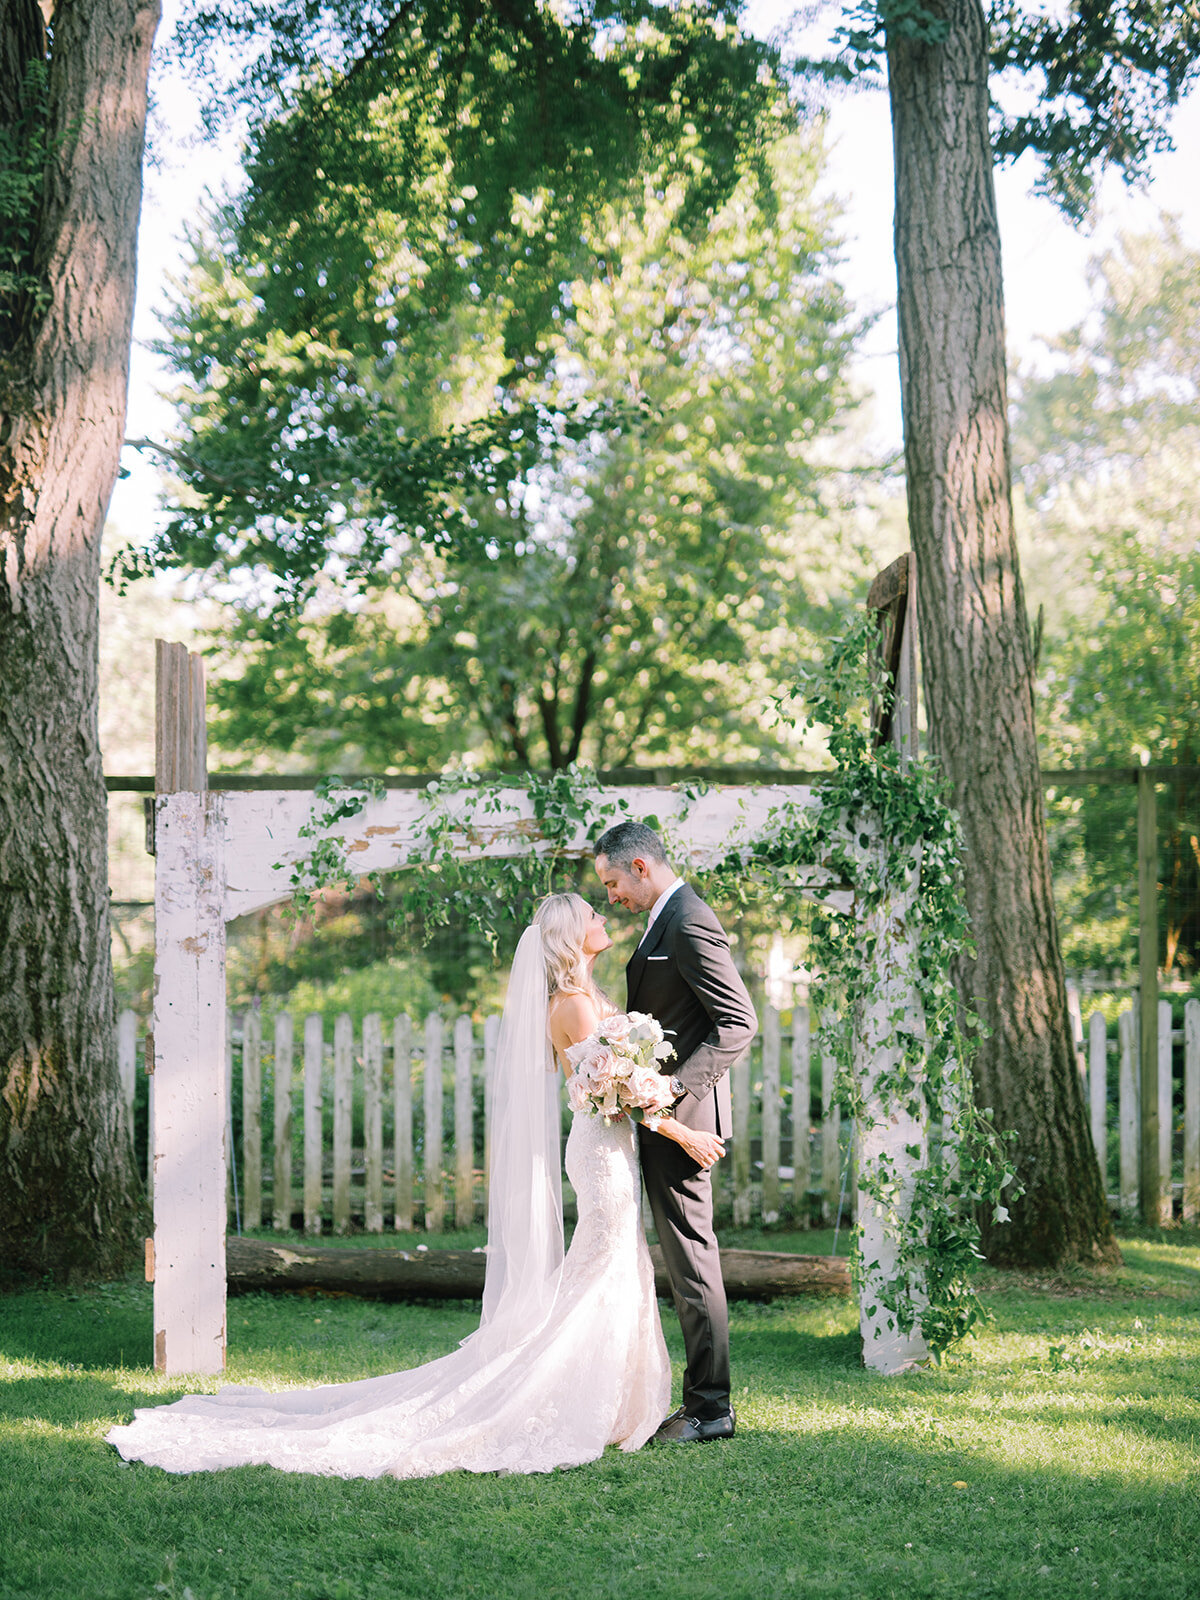 du_soleil_photographie_life'spatina_willowbrook_farm_wedding_christine_david_bride_groom_1st_look-129_websize